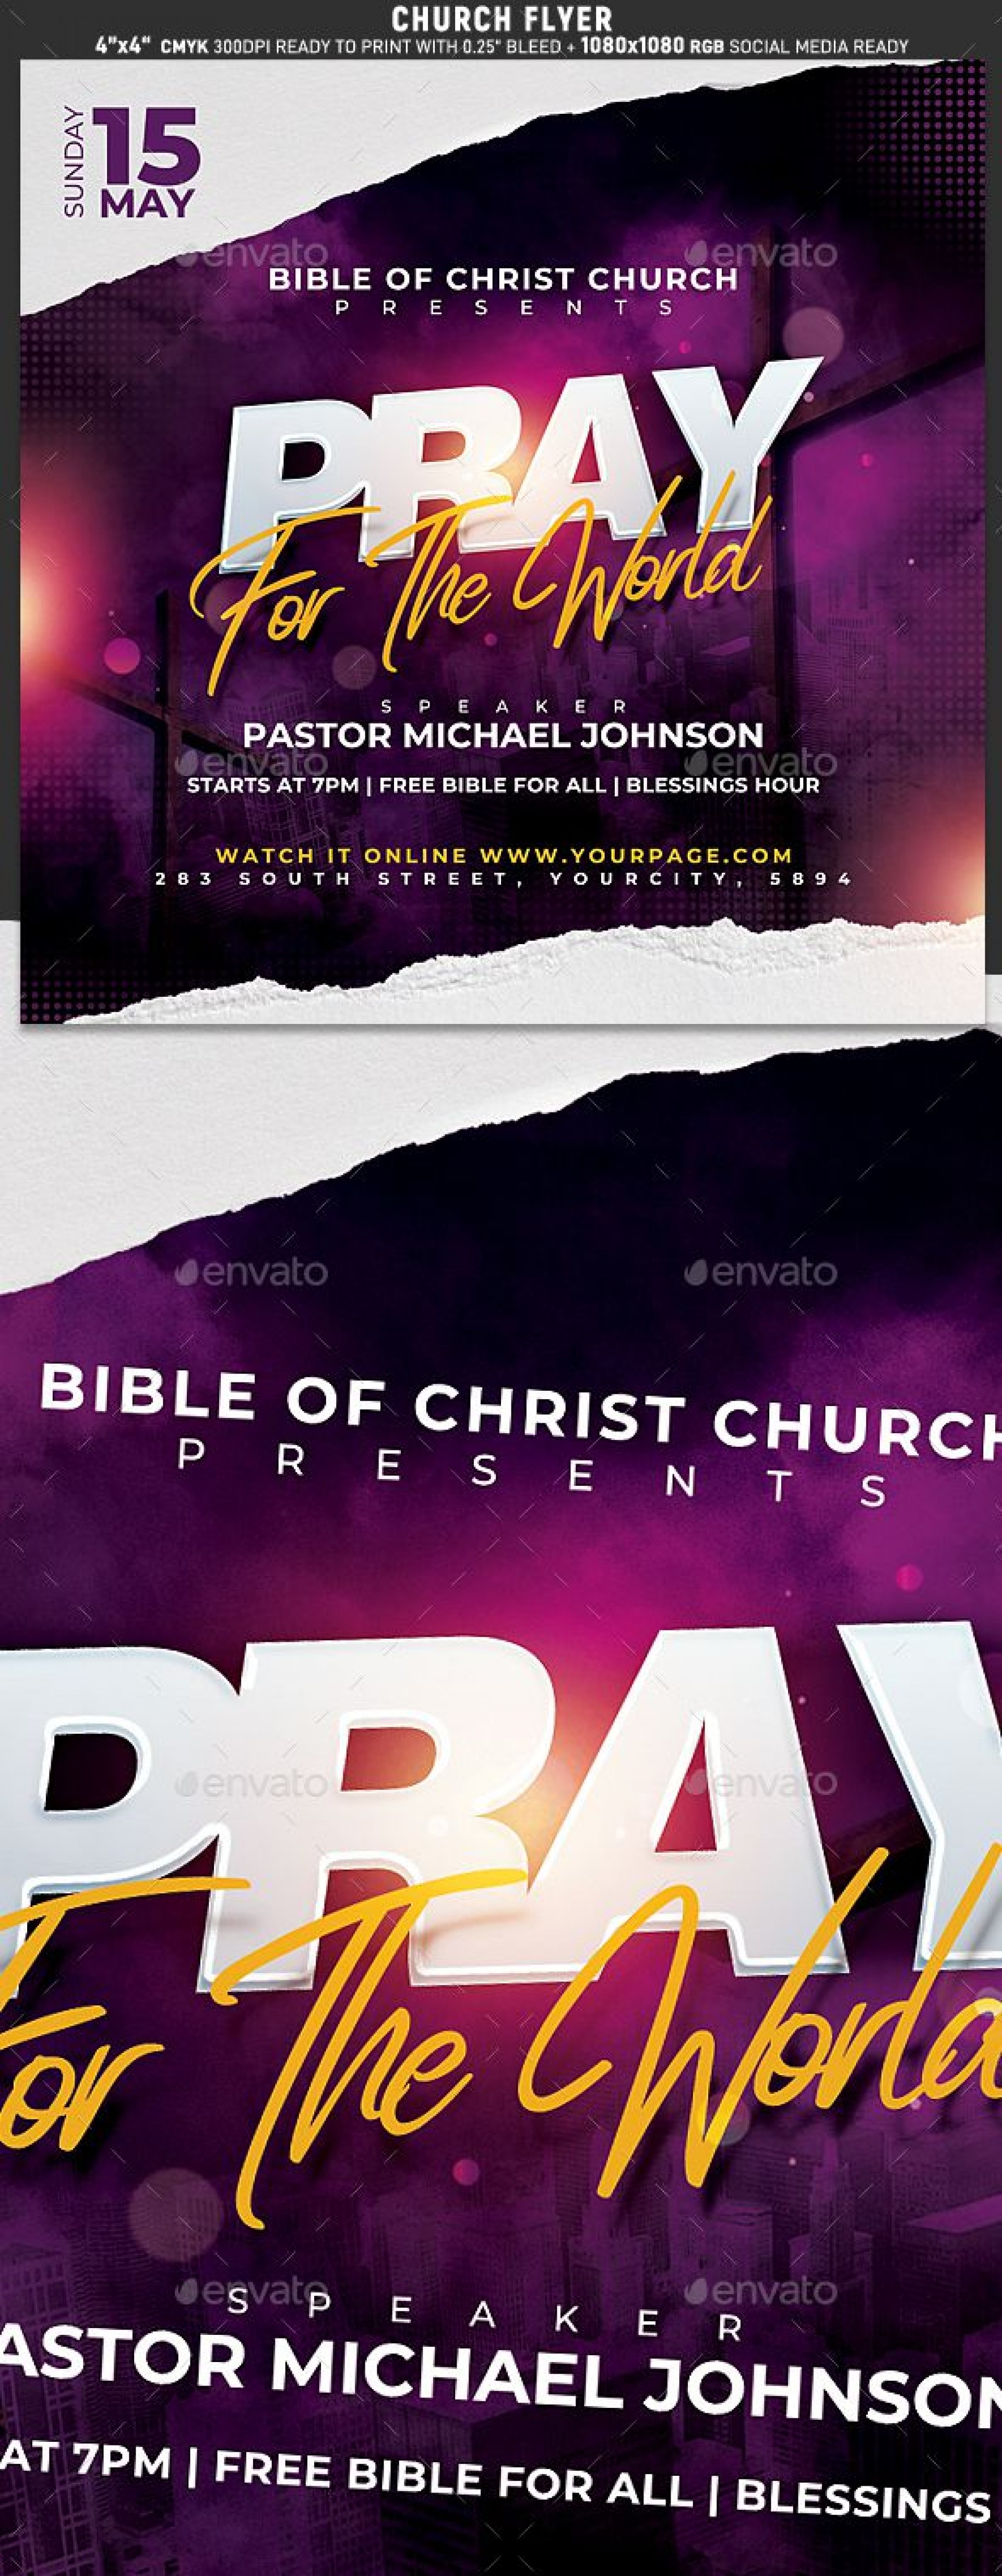 006 Singular Church Flyer Template Free High Resolution  Easter Anniversary Conference Psd1920